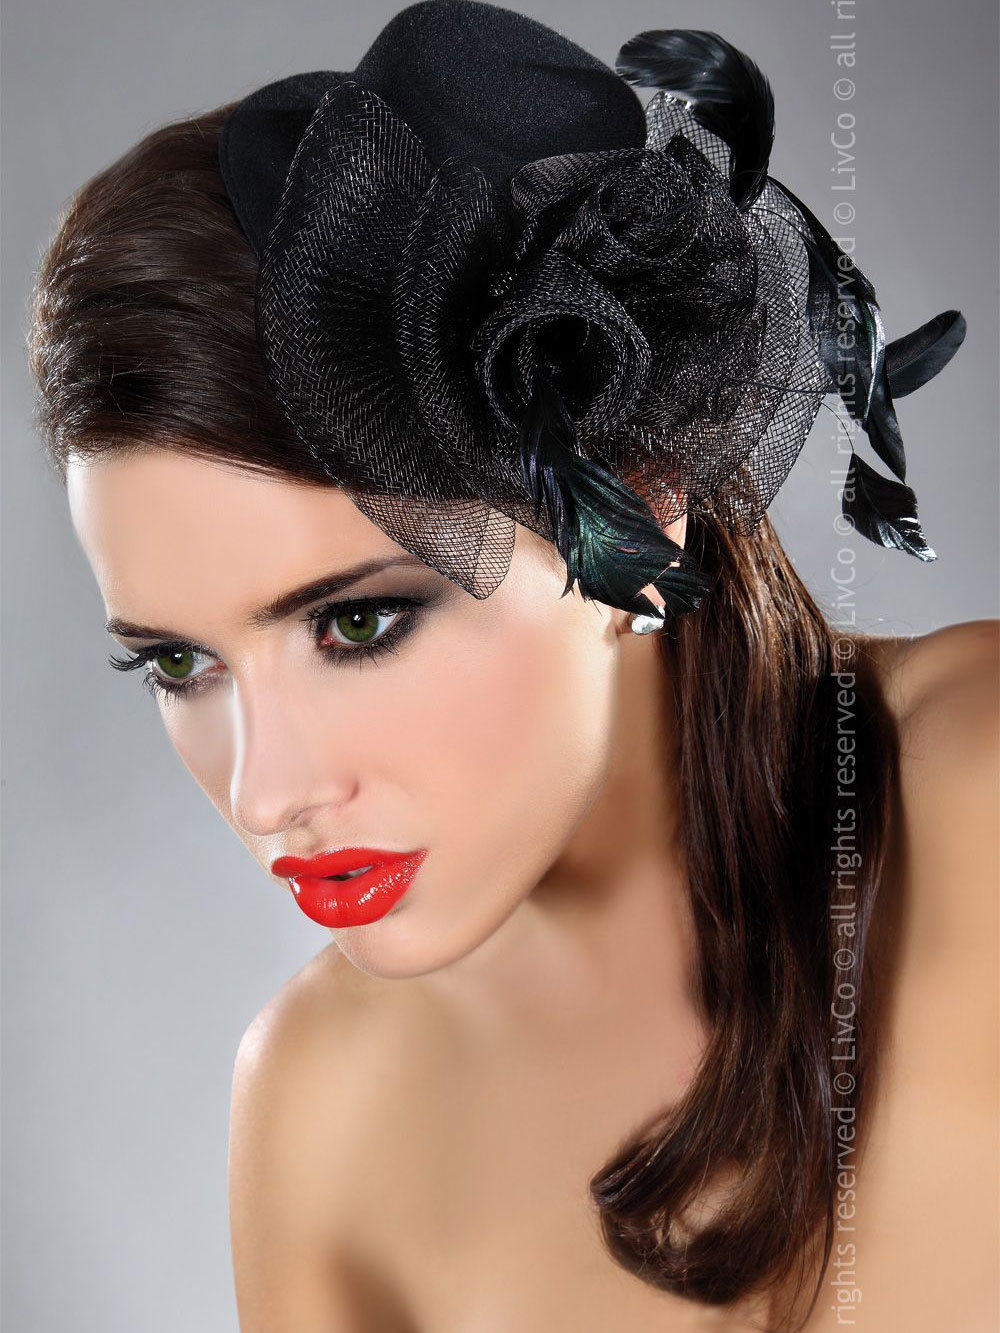 Palarie Mini top hat model 27 Negru de la LivCo